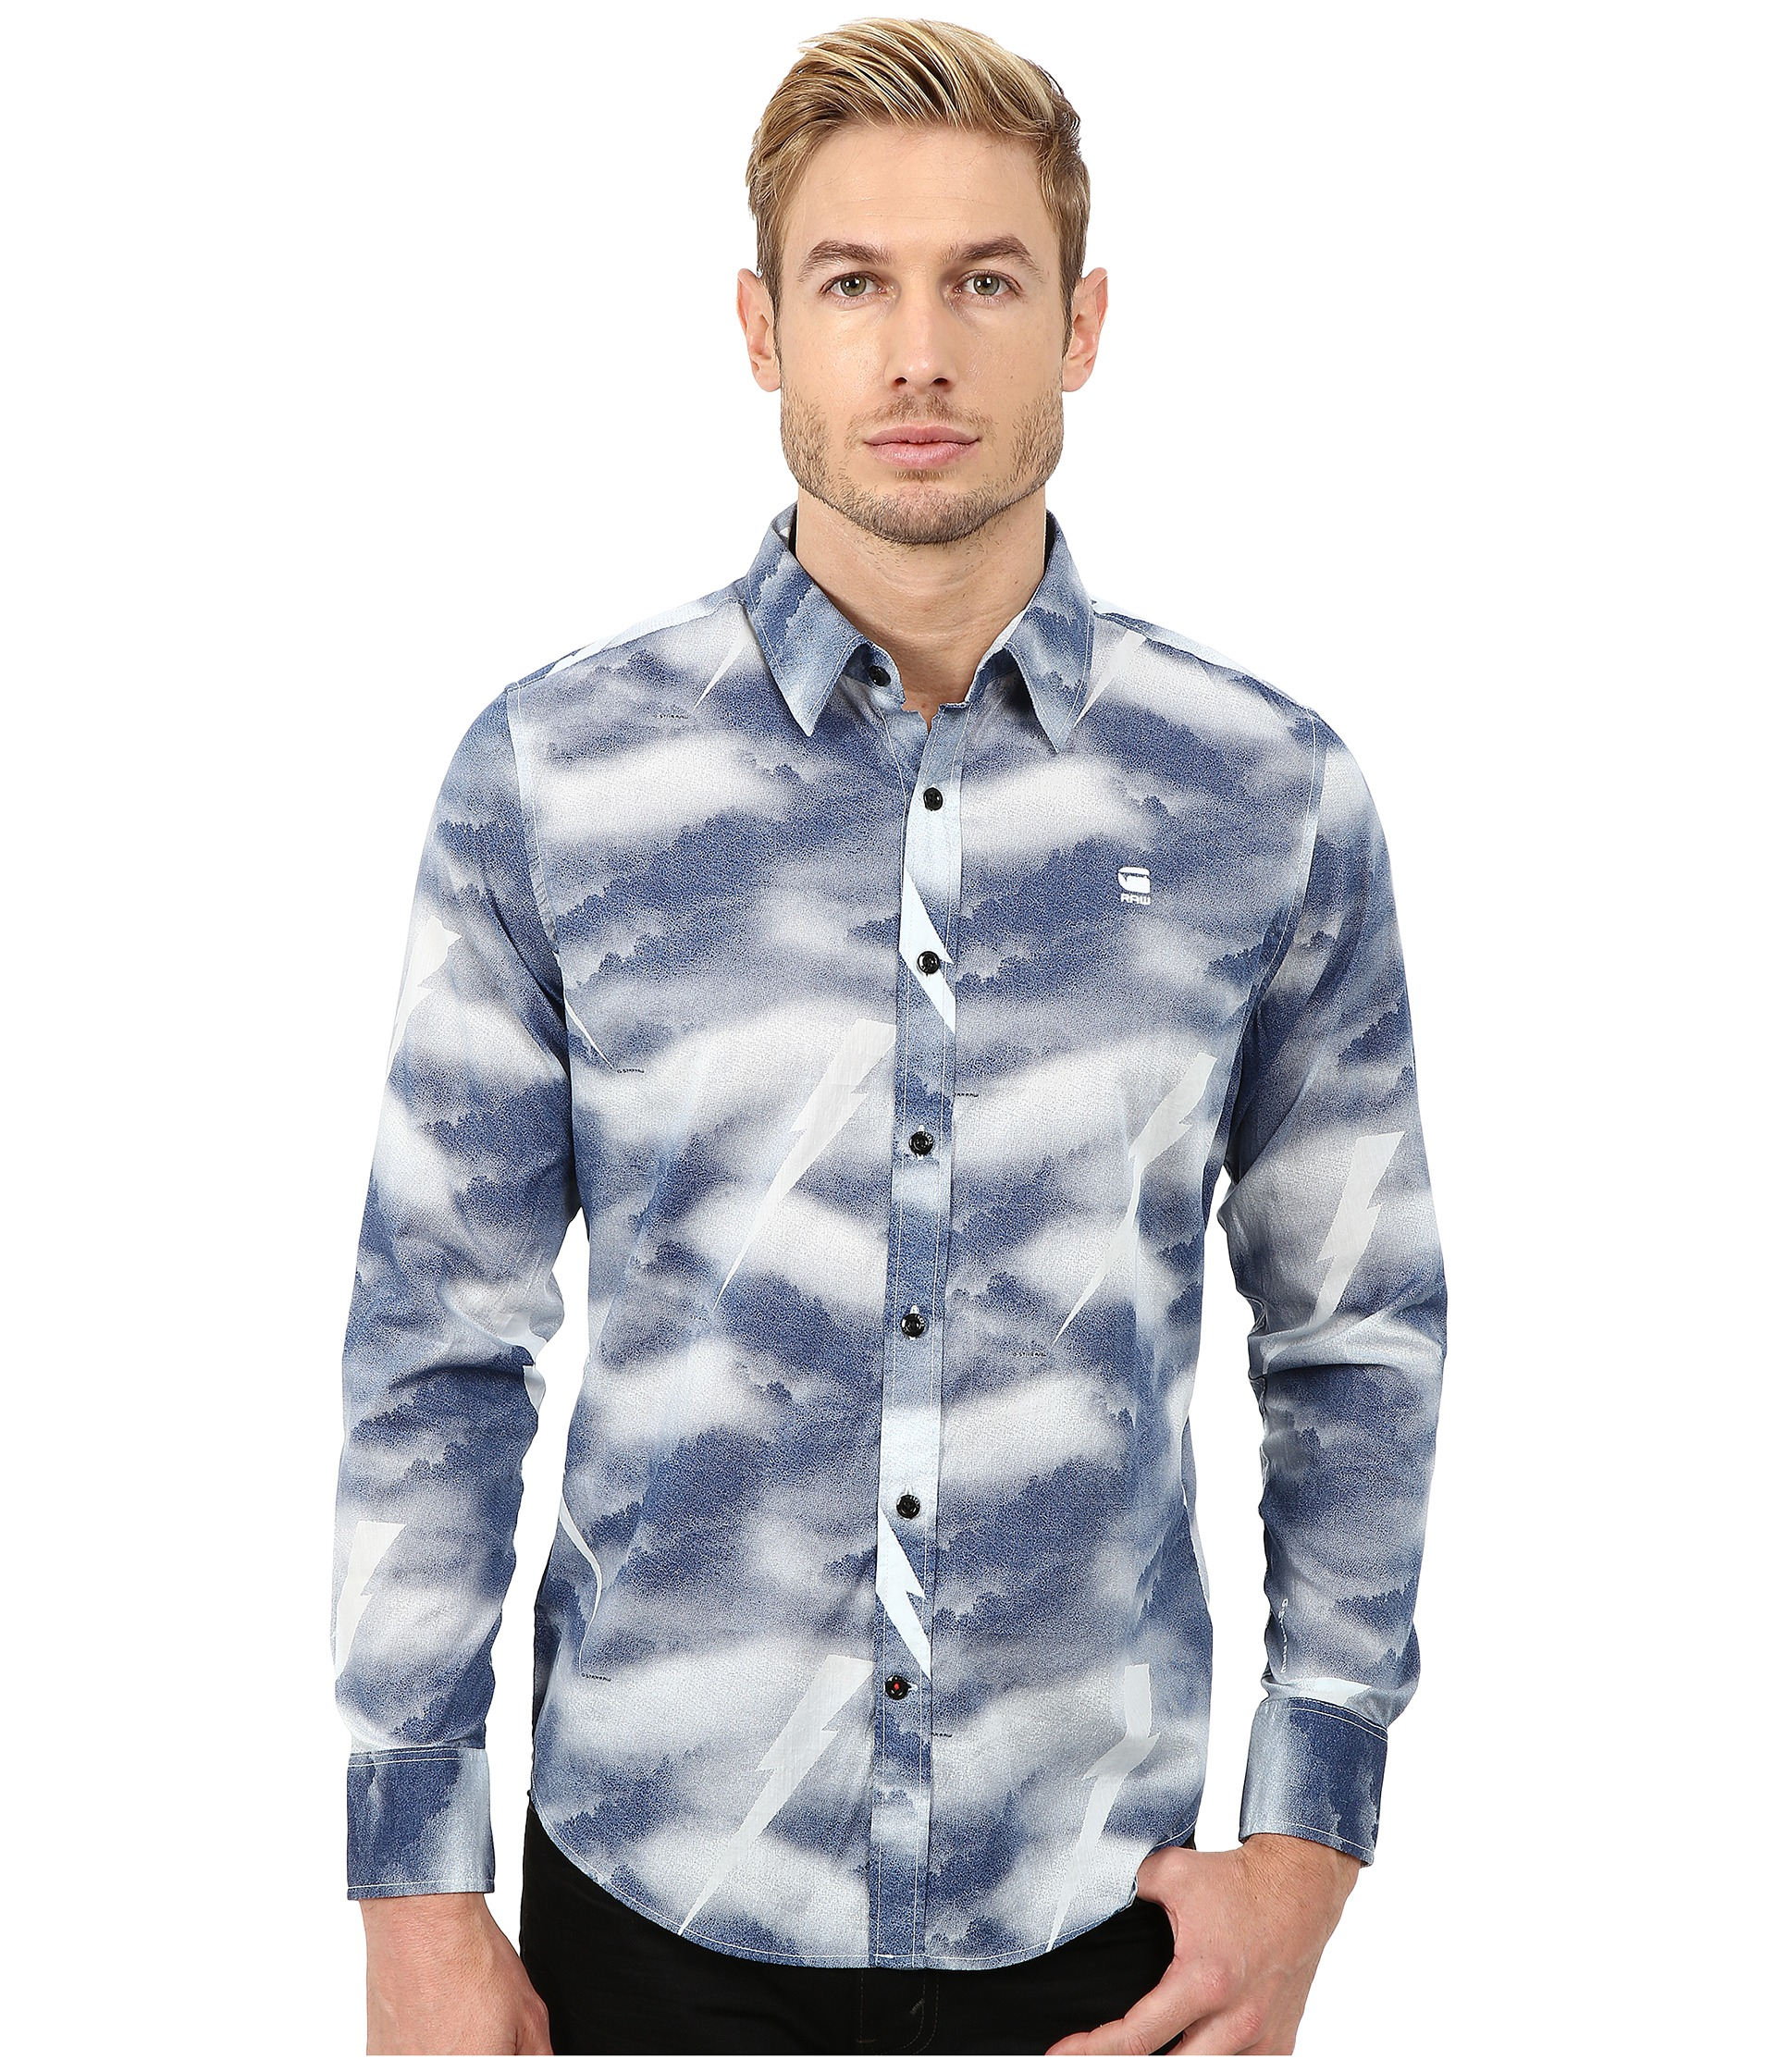 lyst g star raw shattor all over print long sleeve shirt in blue for men. Black Bedroom Furniture Sets. Home Design Ideas